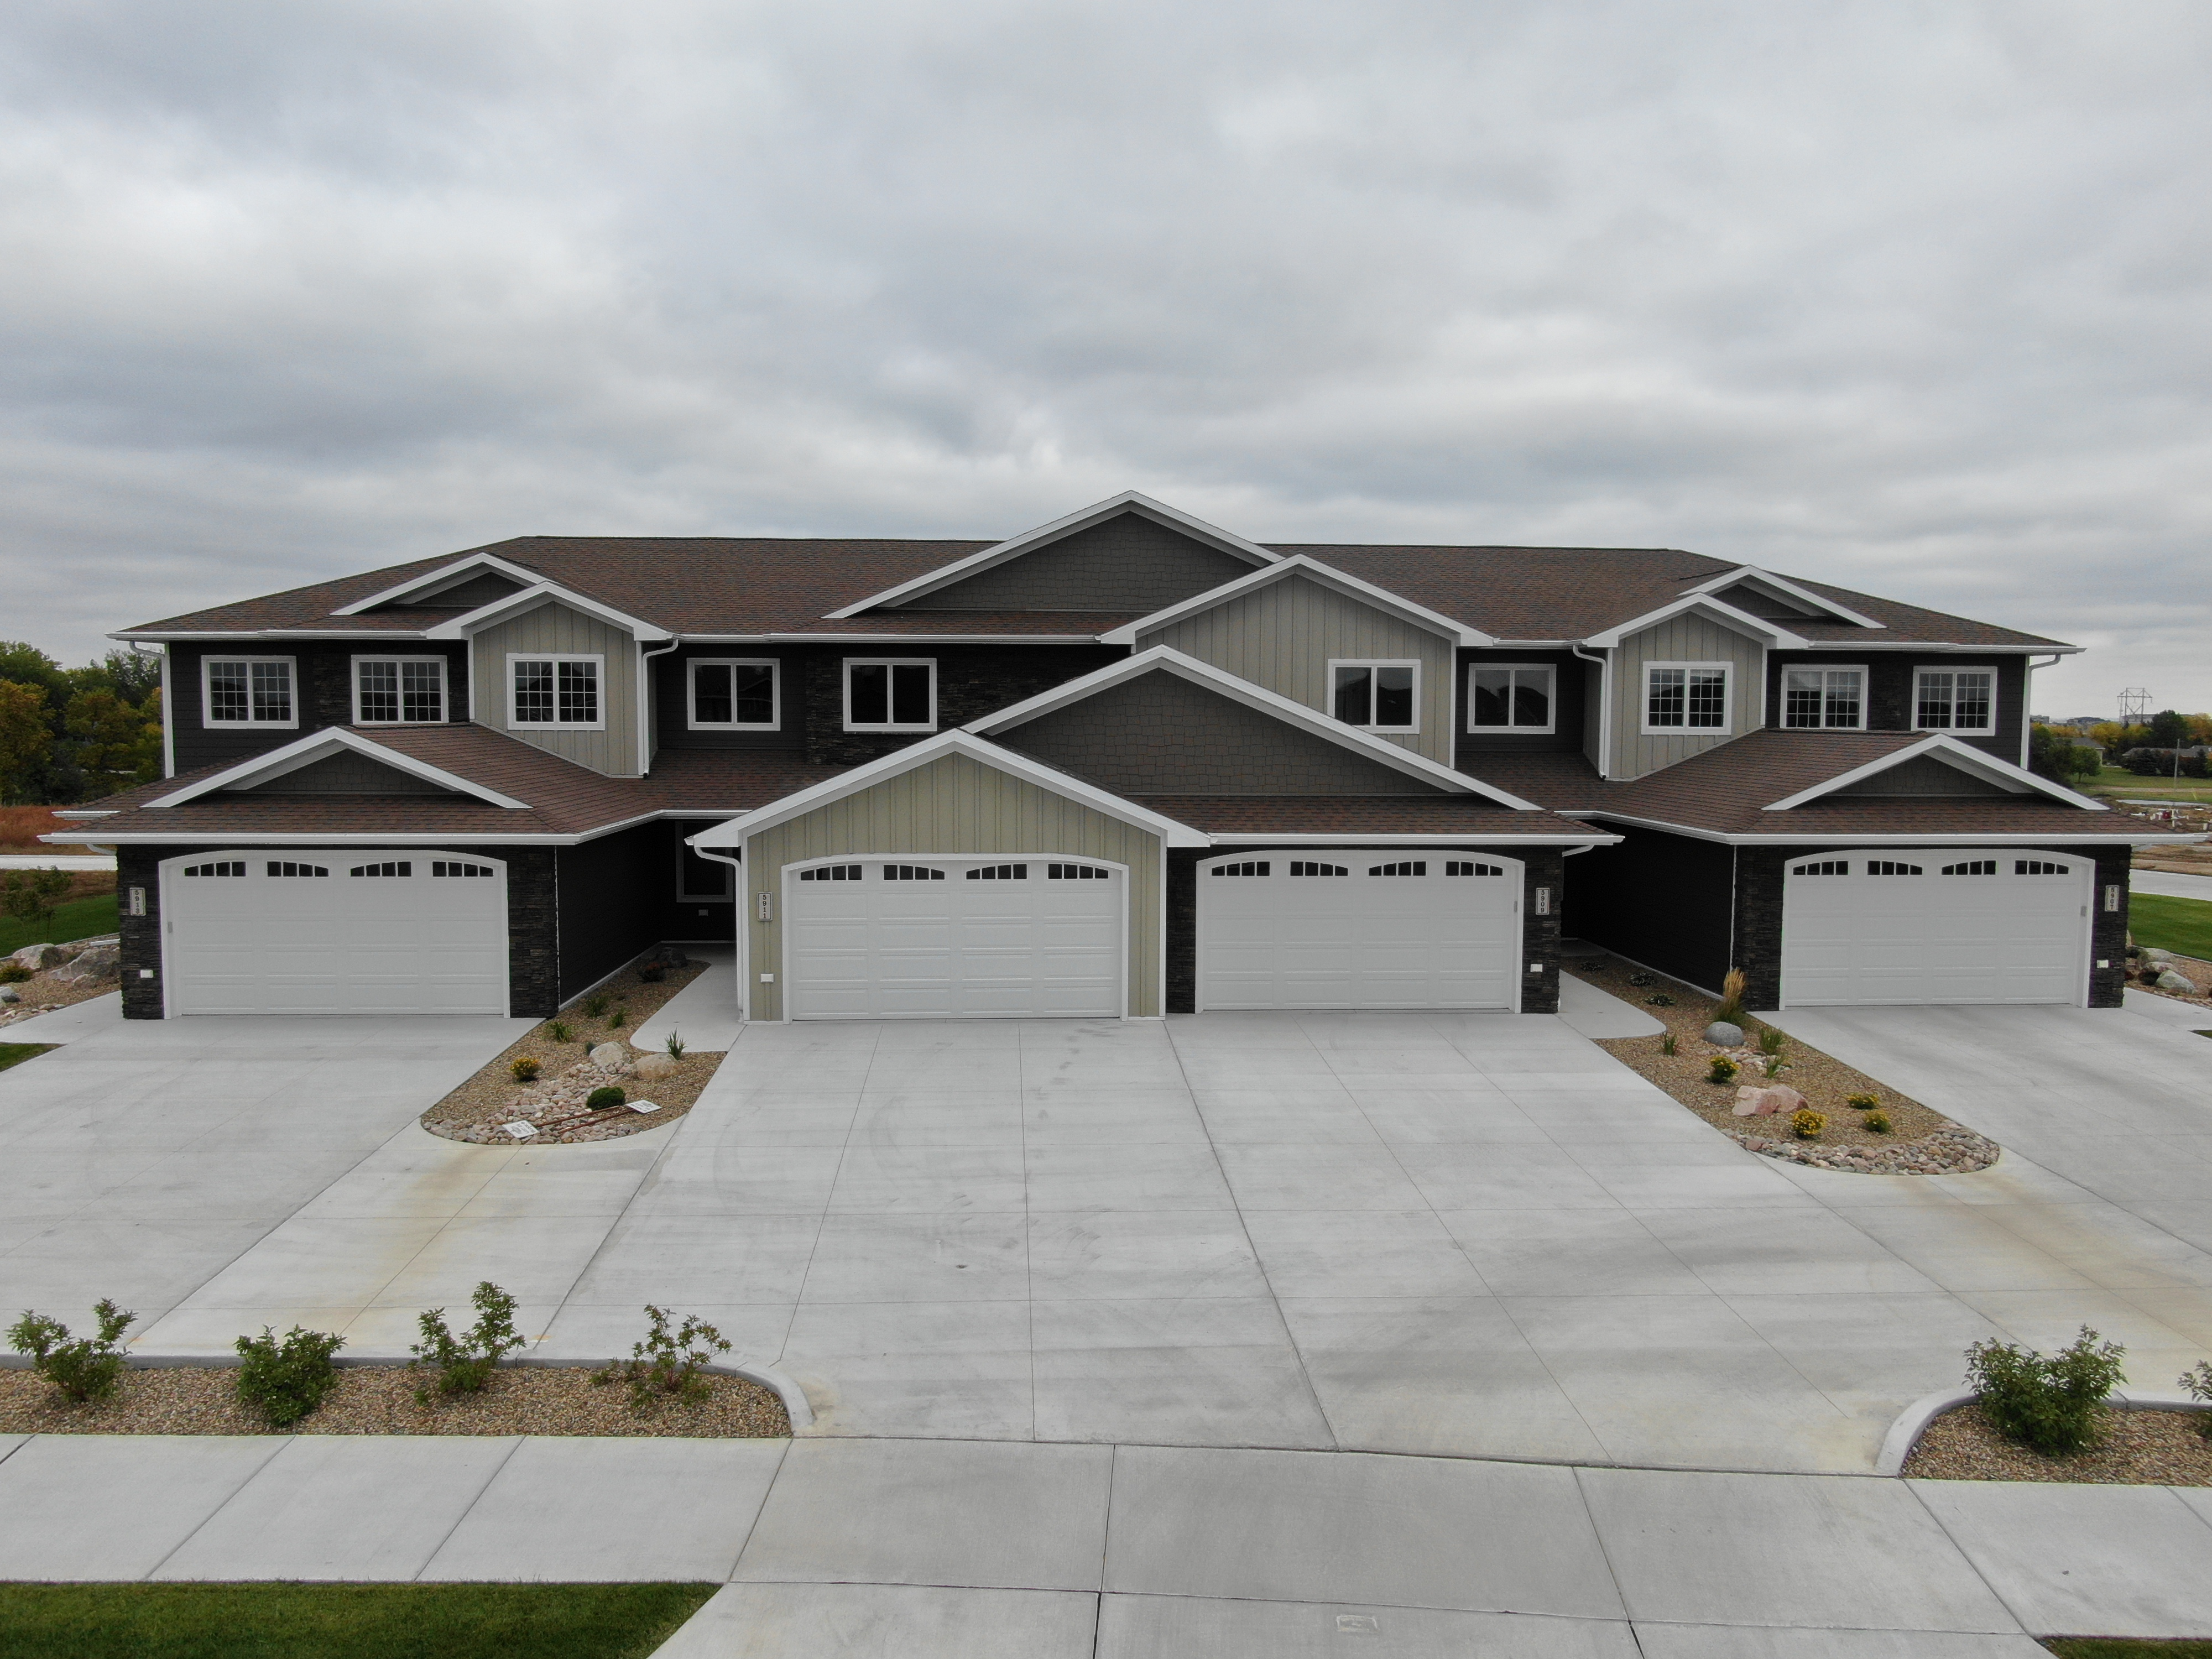 5909 Sonora Way - $349,900 with Landscaping